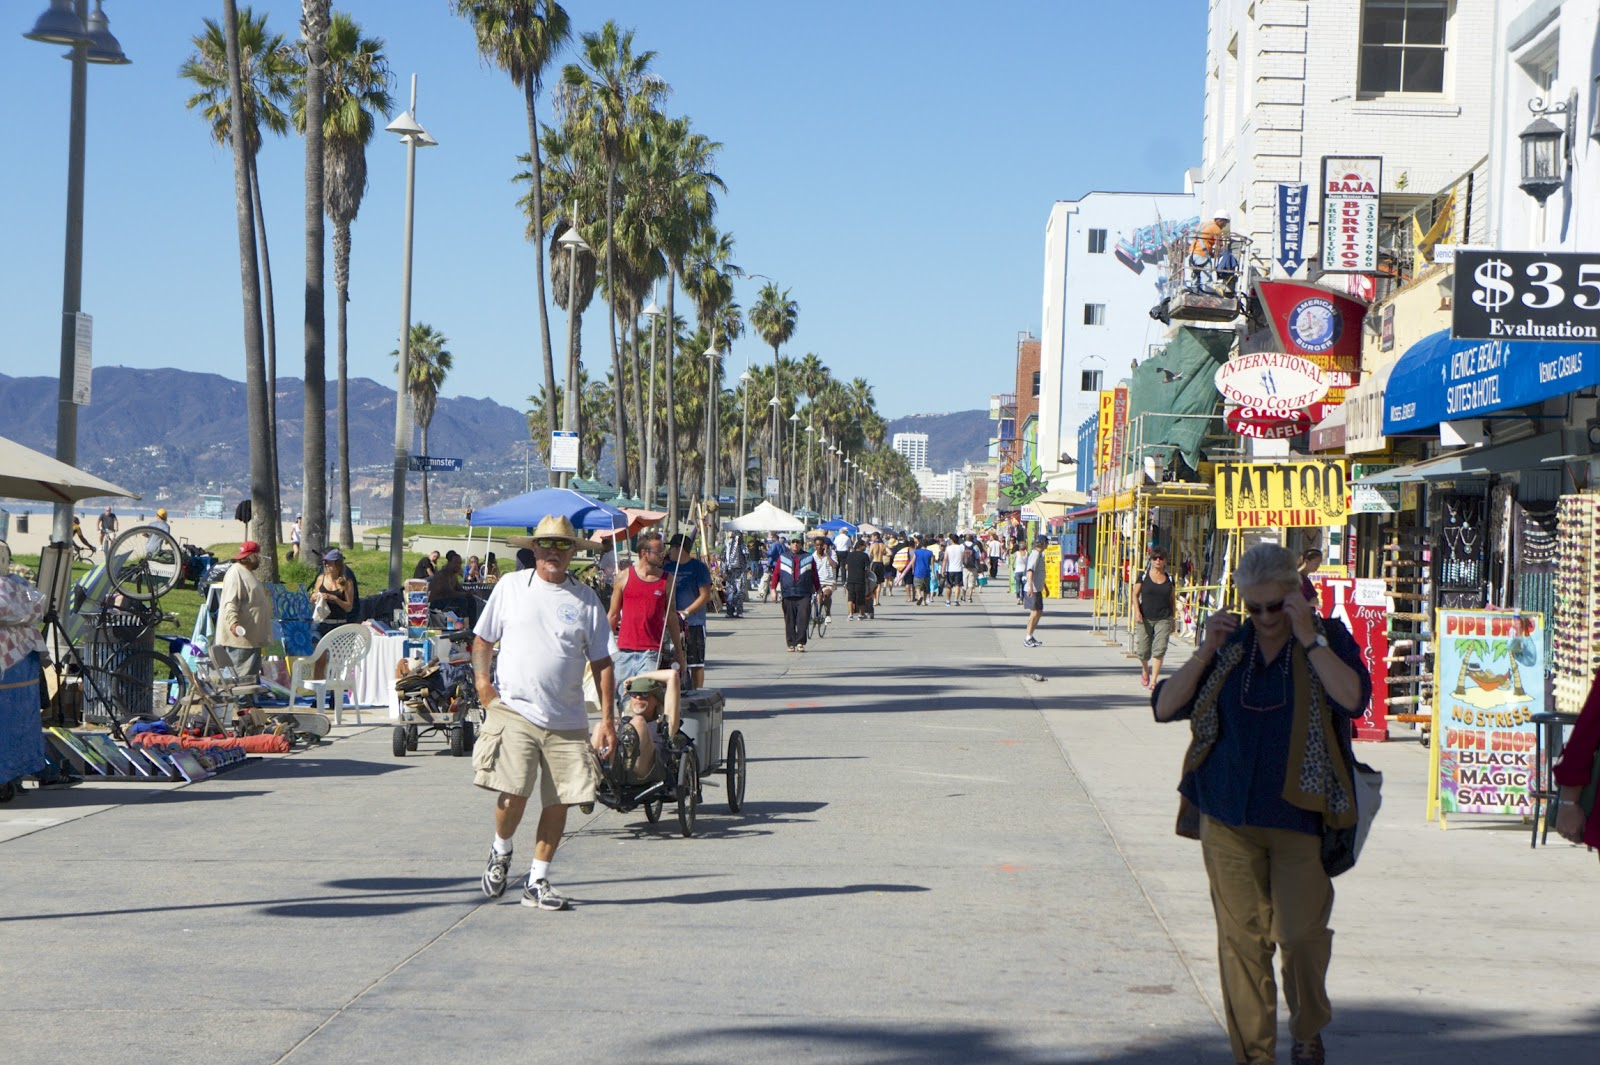 The Famous Venice Beach Ocean Front Was Exactly As Described In Travel Guides Colorful And A Bit On Hippie Side From Surf Fashion Board S